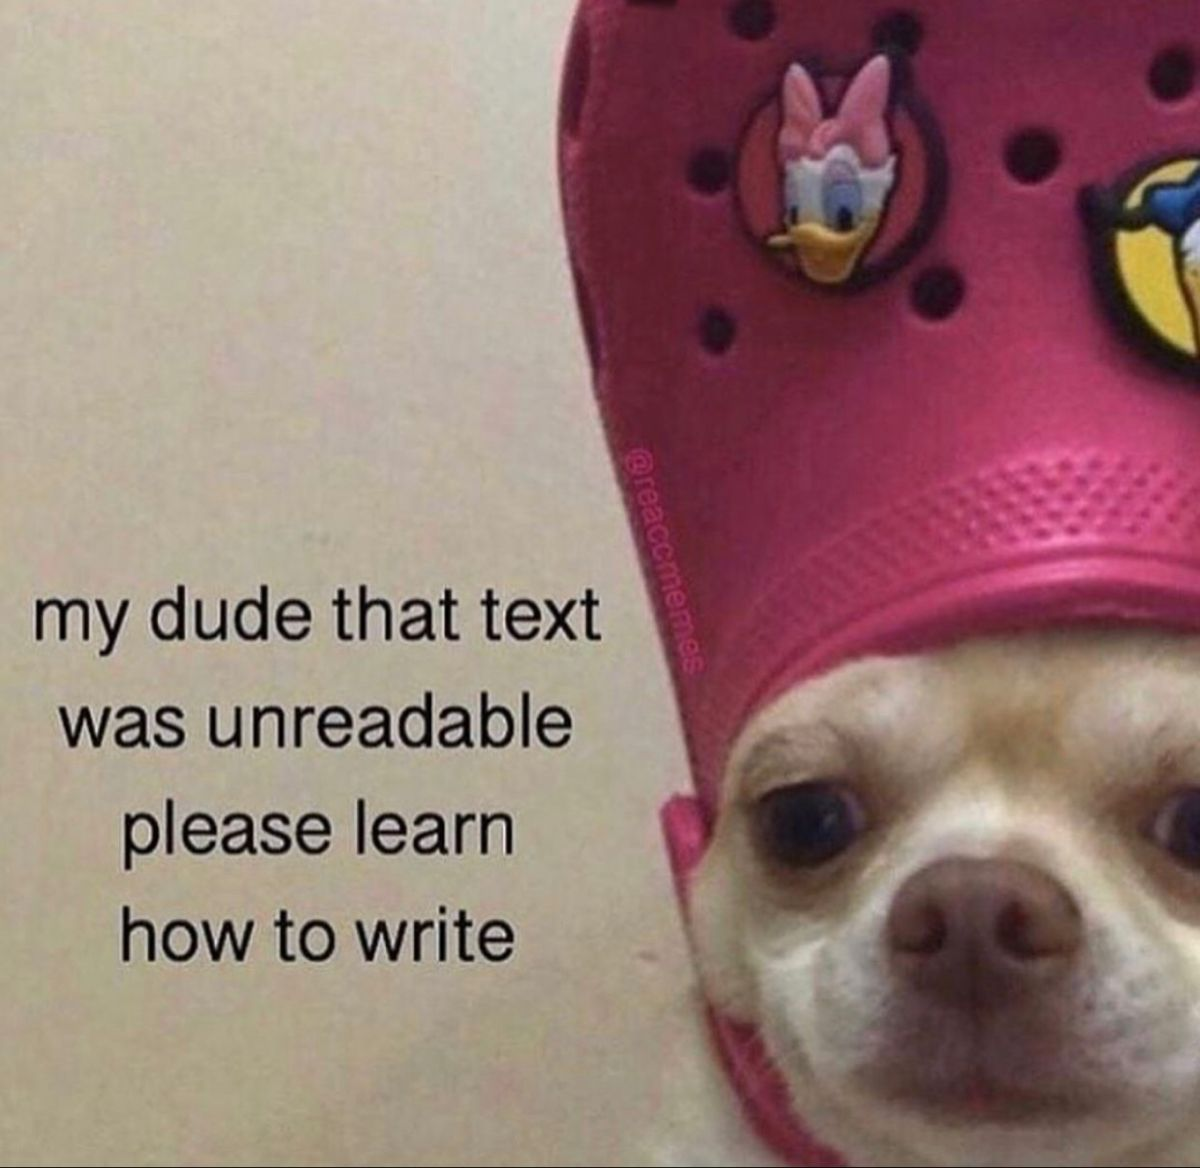 Memes To Send To Your Group Chat Memes Group Chat Really Funny Memes Stupid Funny Memes Funny Relatable Memes